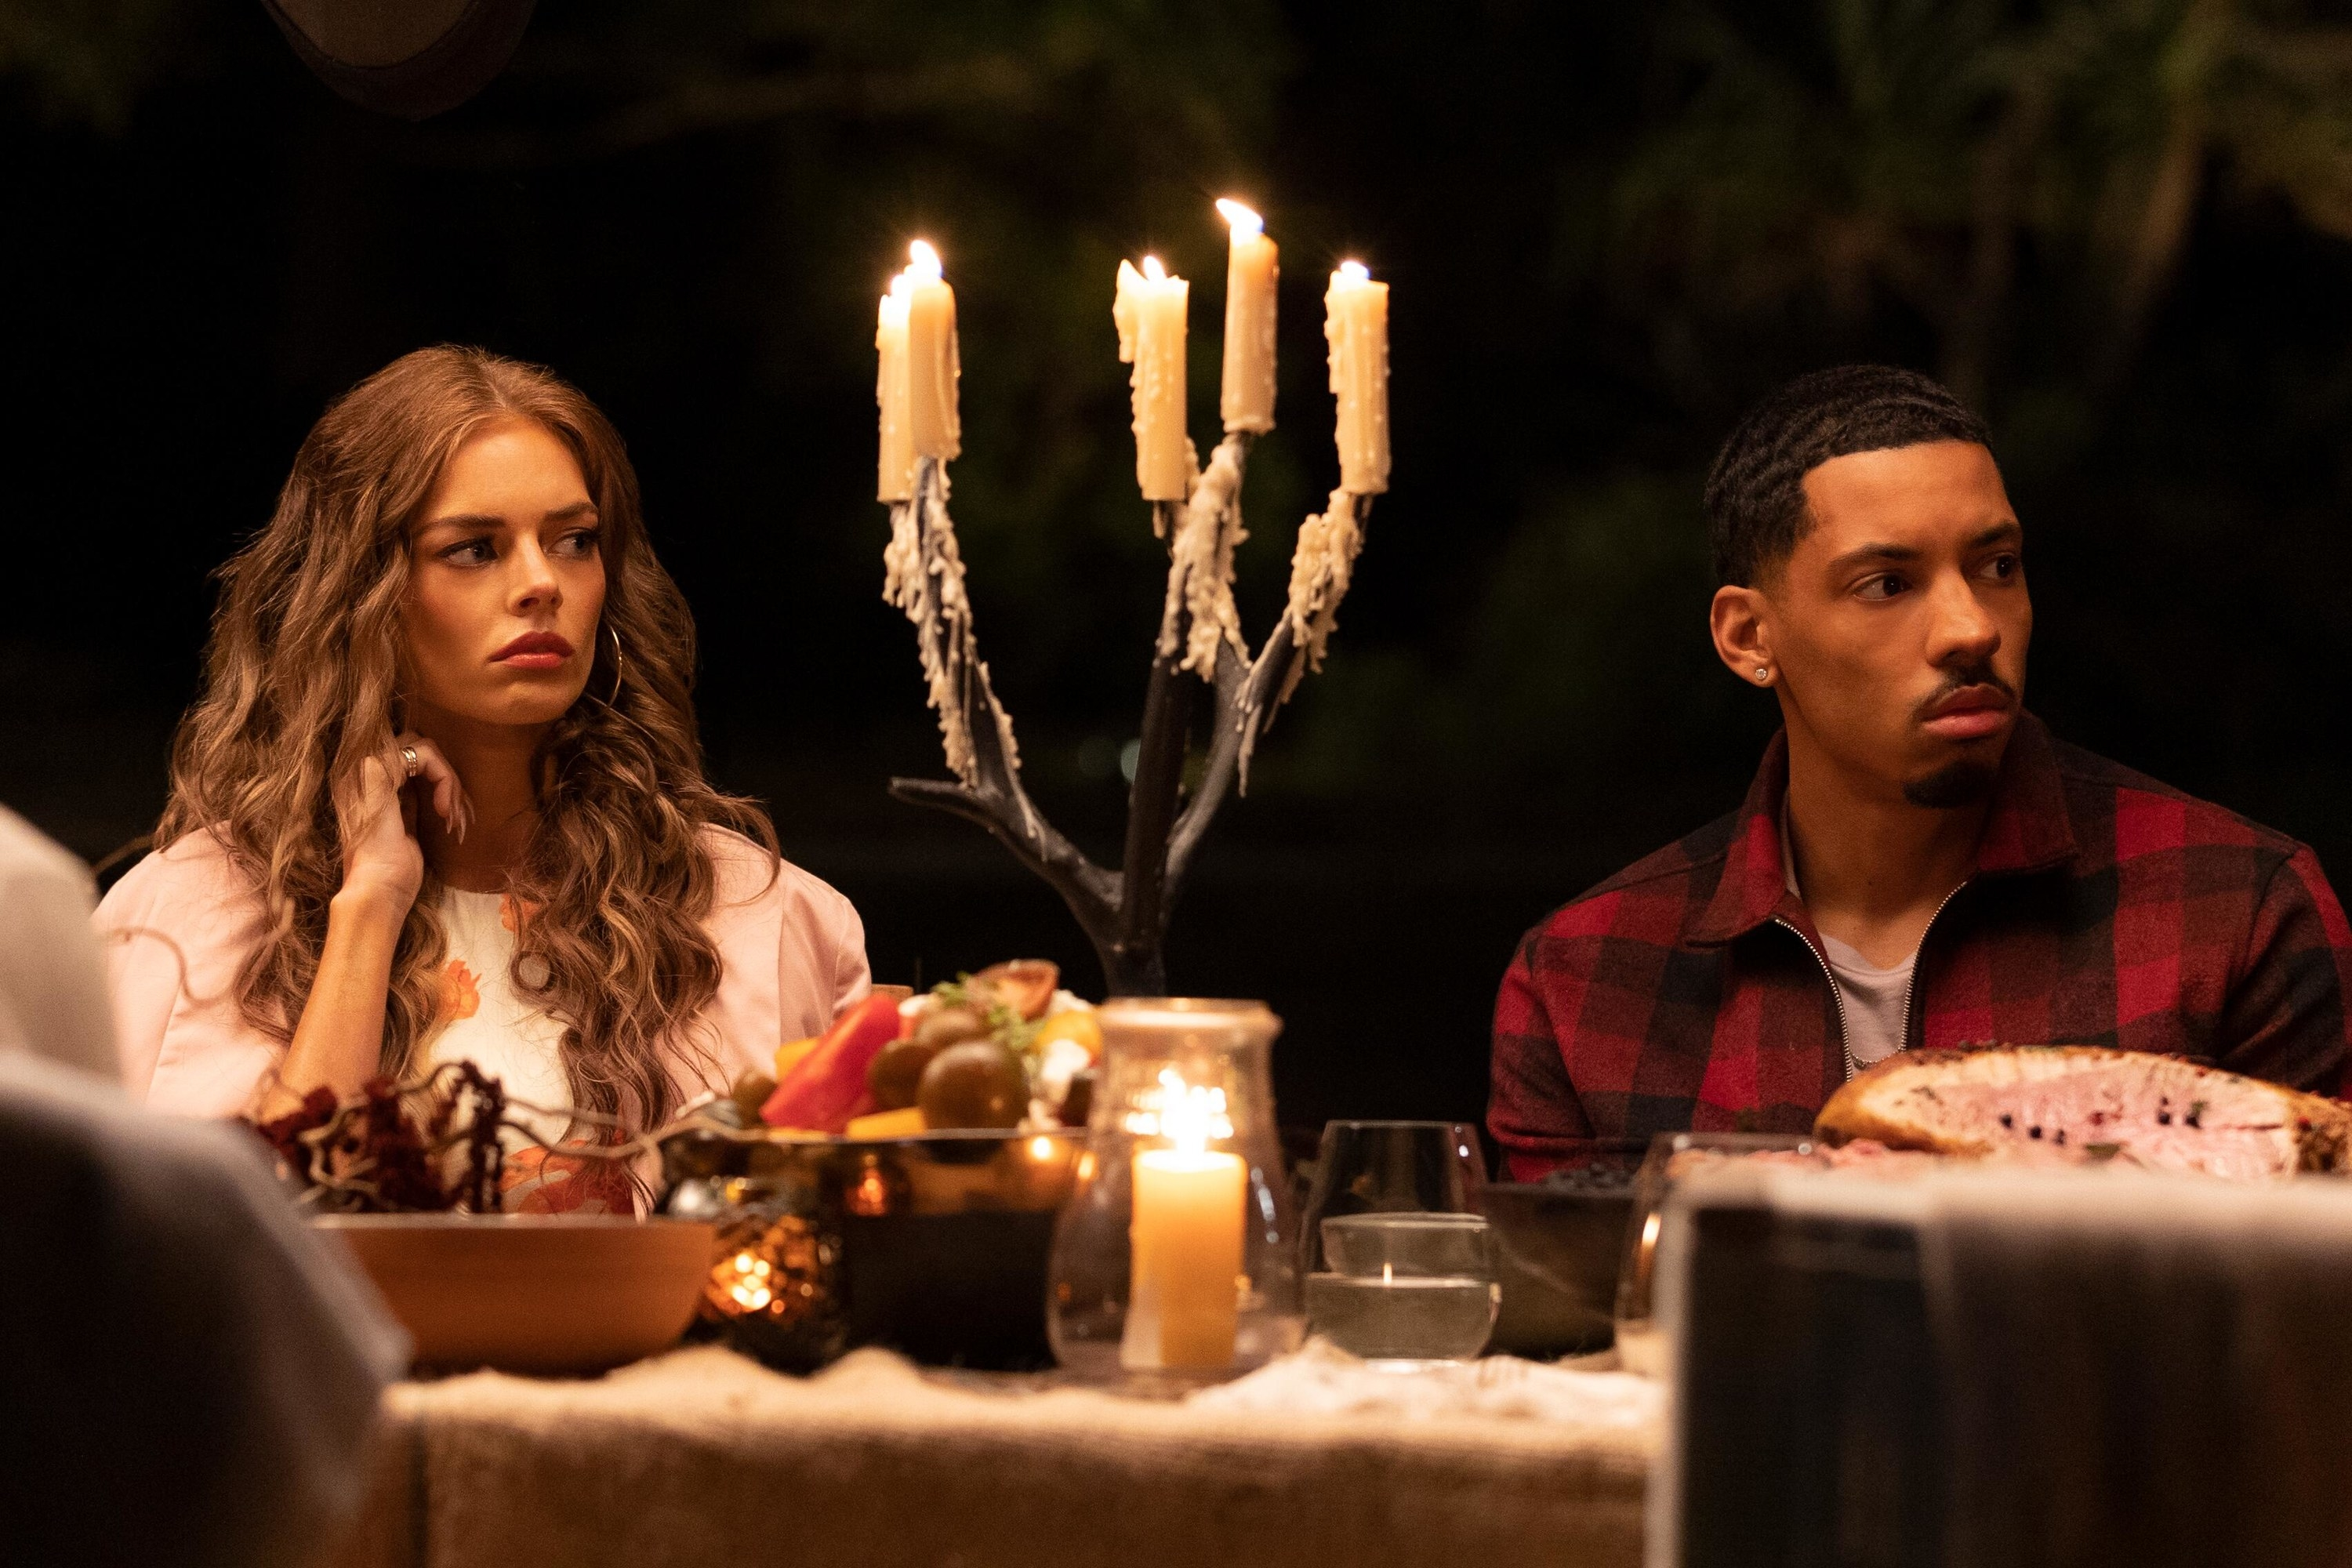 Ben and Jessica sitting at a candlelit dinner table